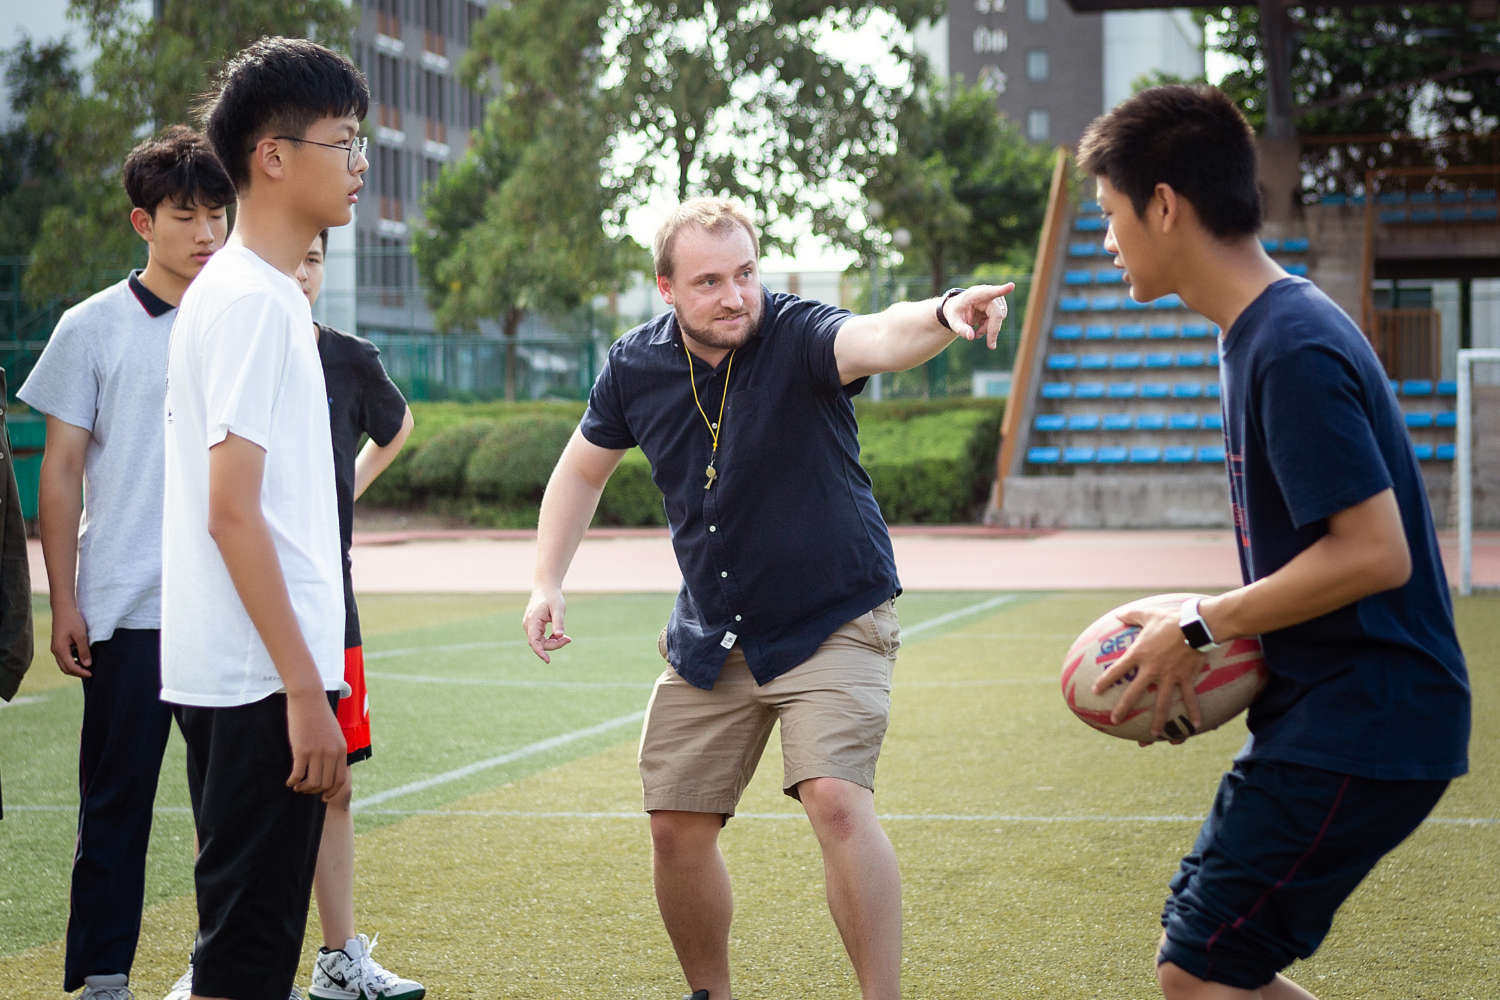 Nanjing-high-school-rugby-lesson-1500x1000